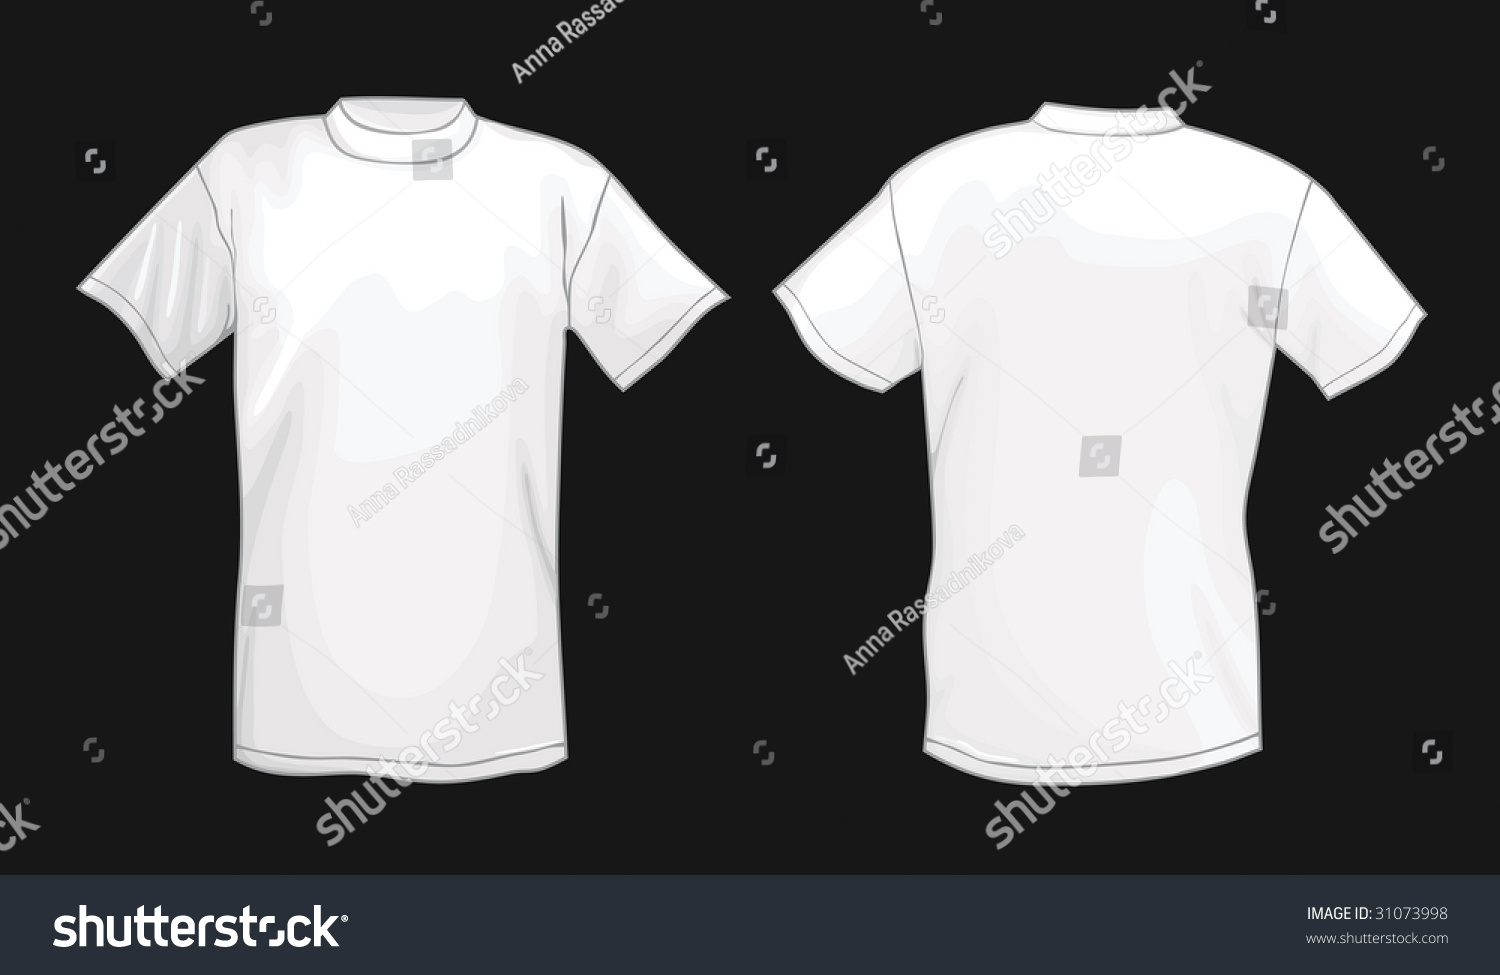 White t shirt front and back template - White Vector T Shirt Design Template Front Back Isolated On Black Background